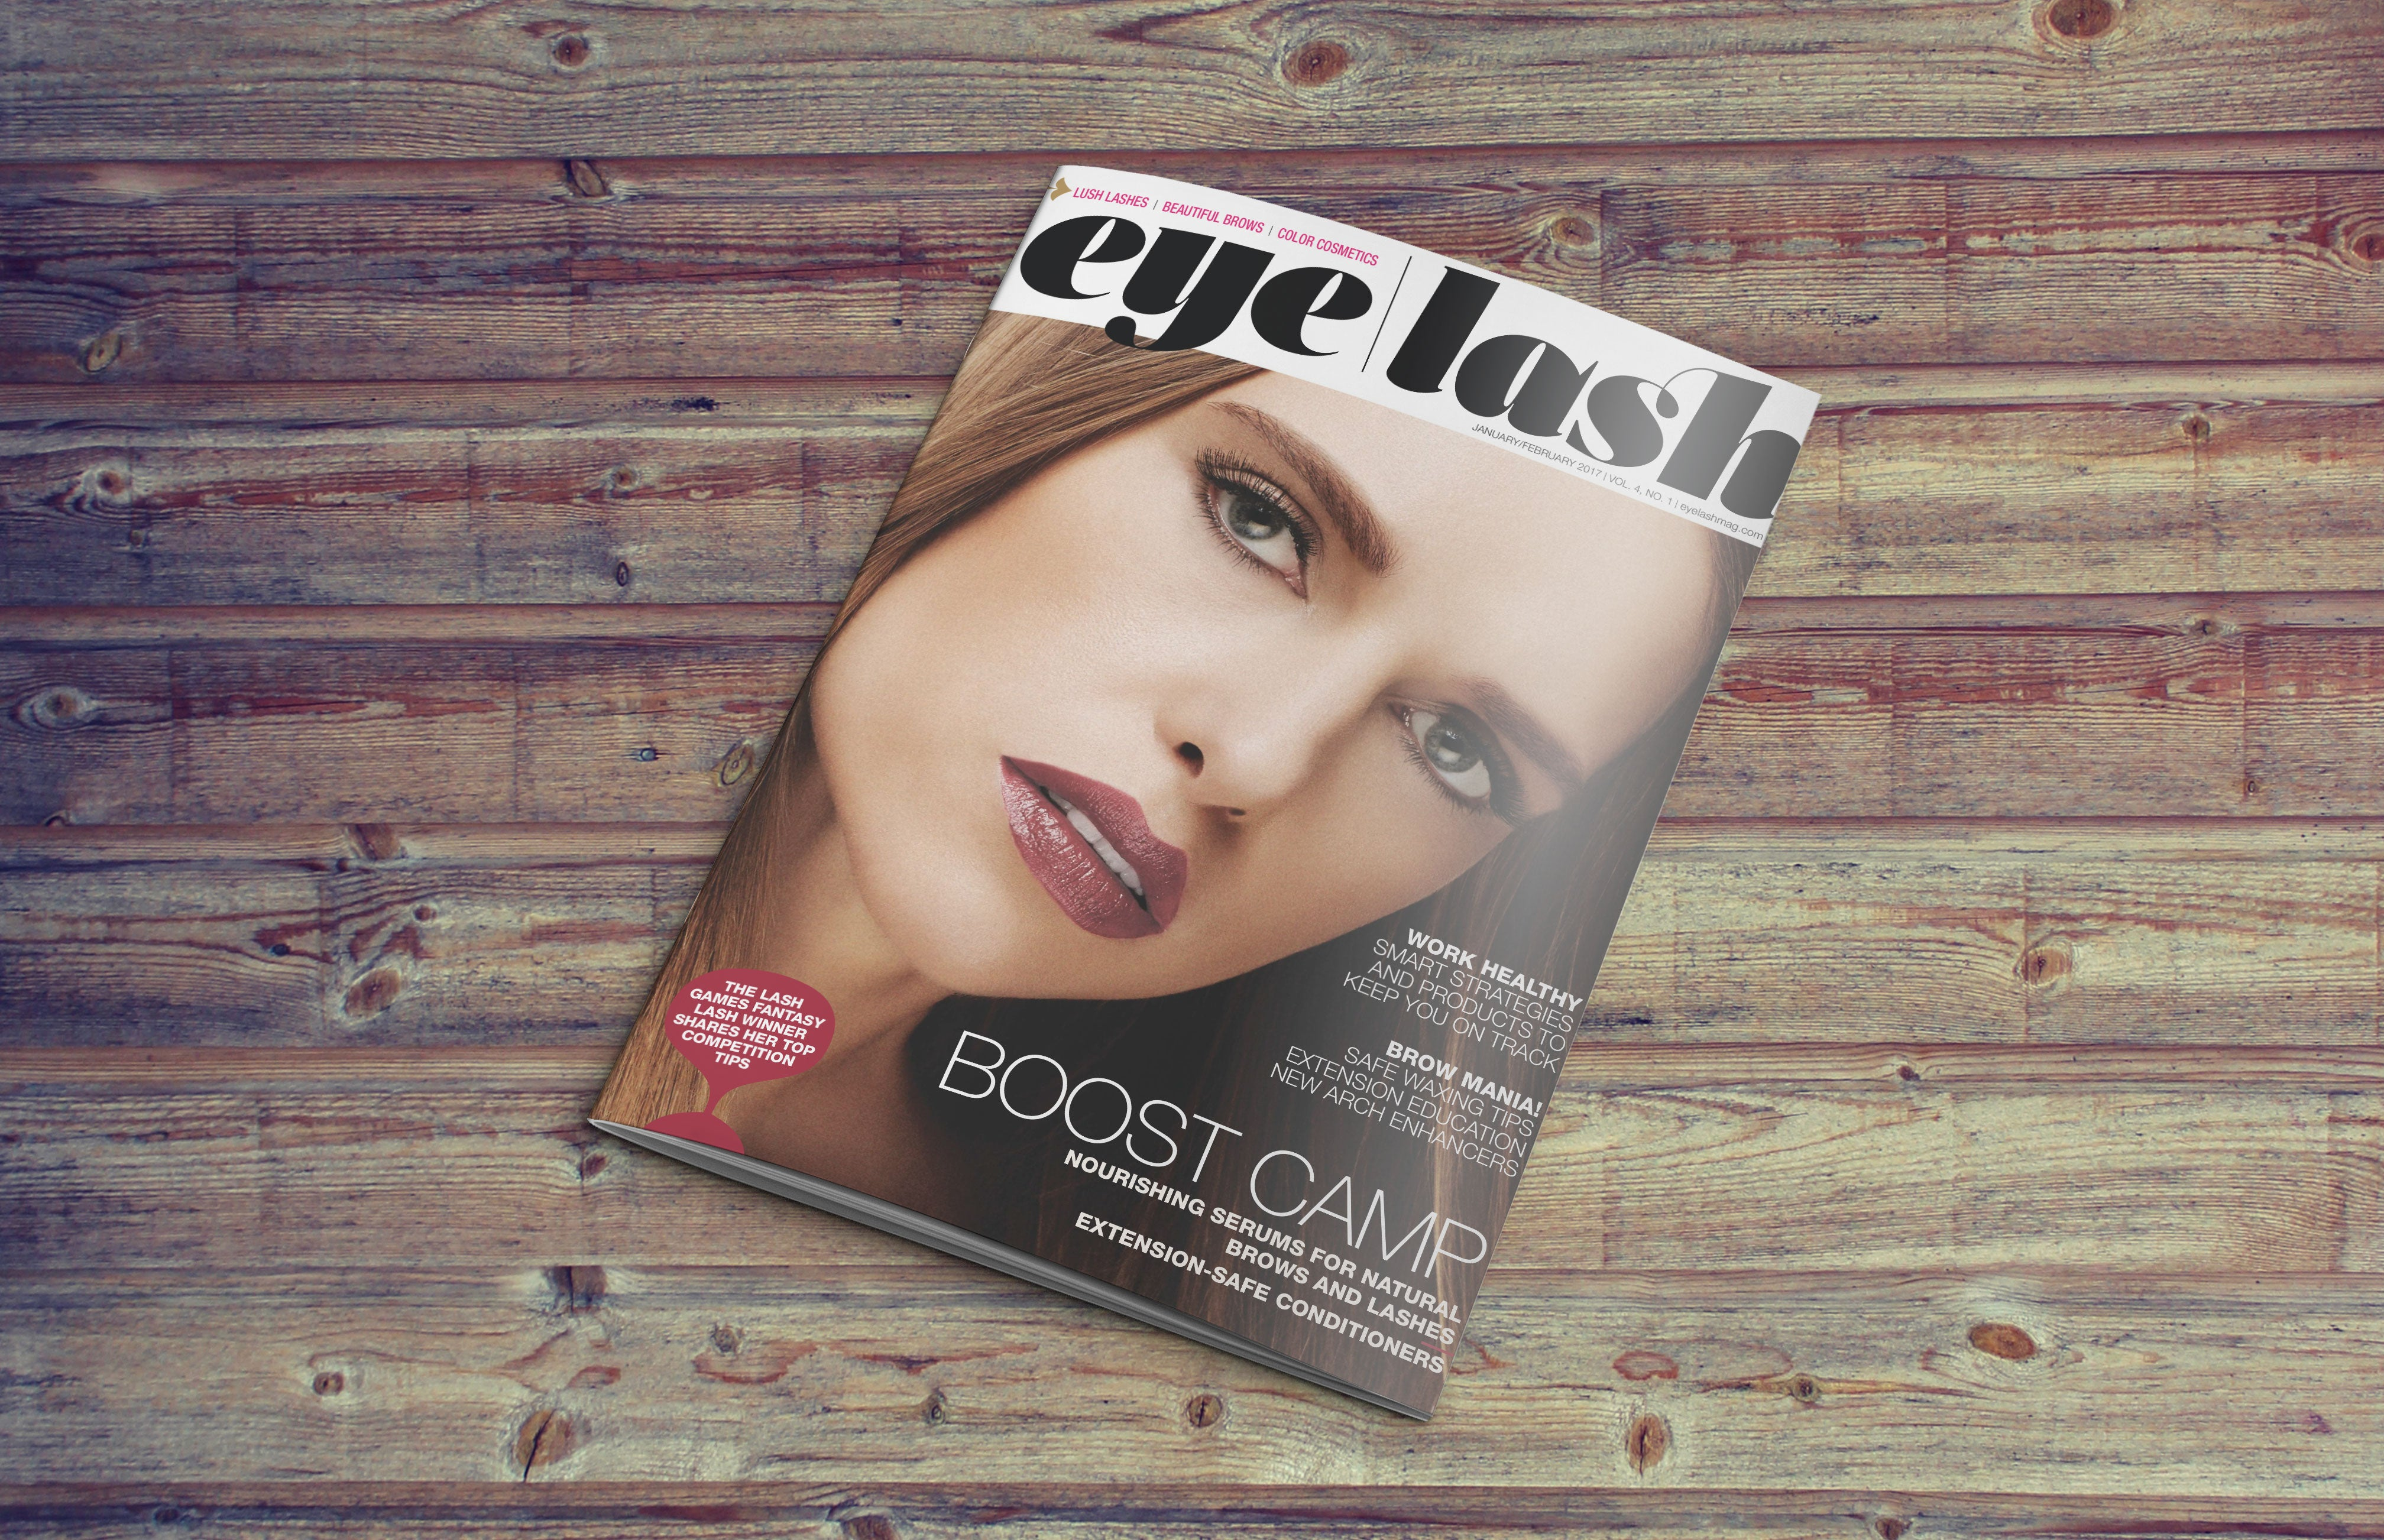 Eylash Magazine on wooden table